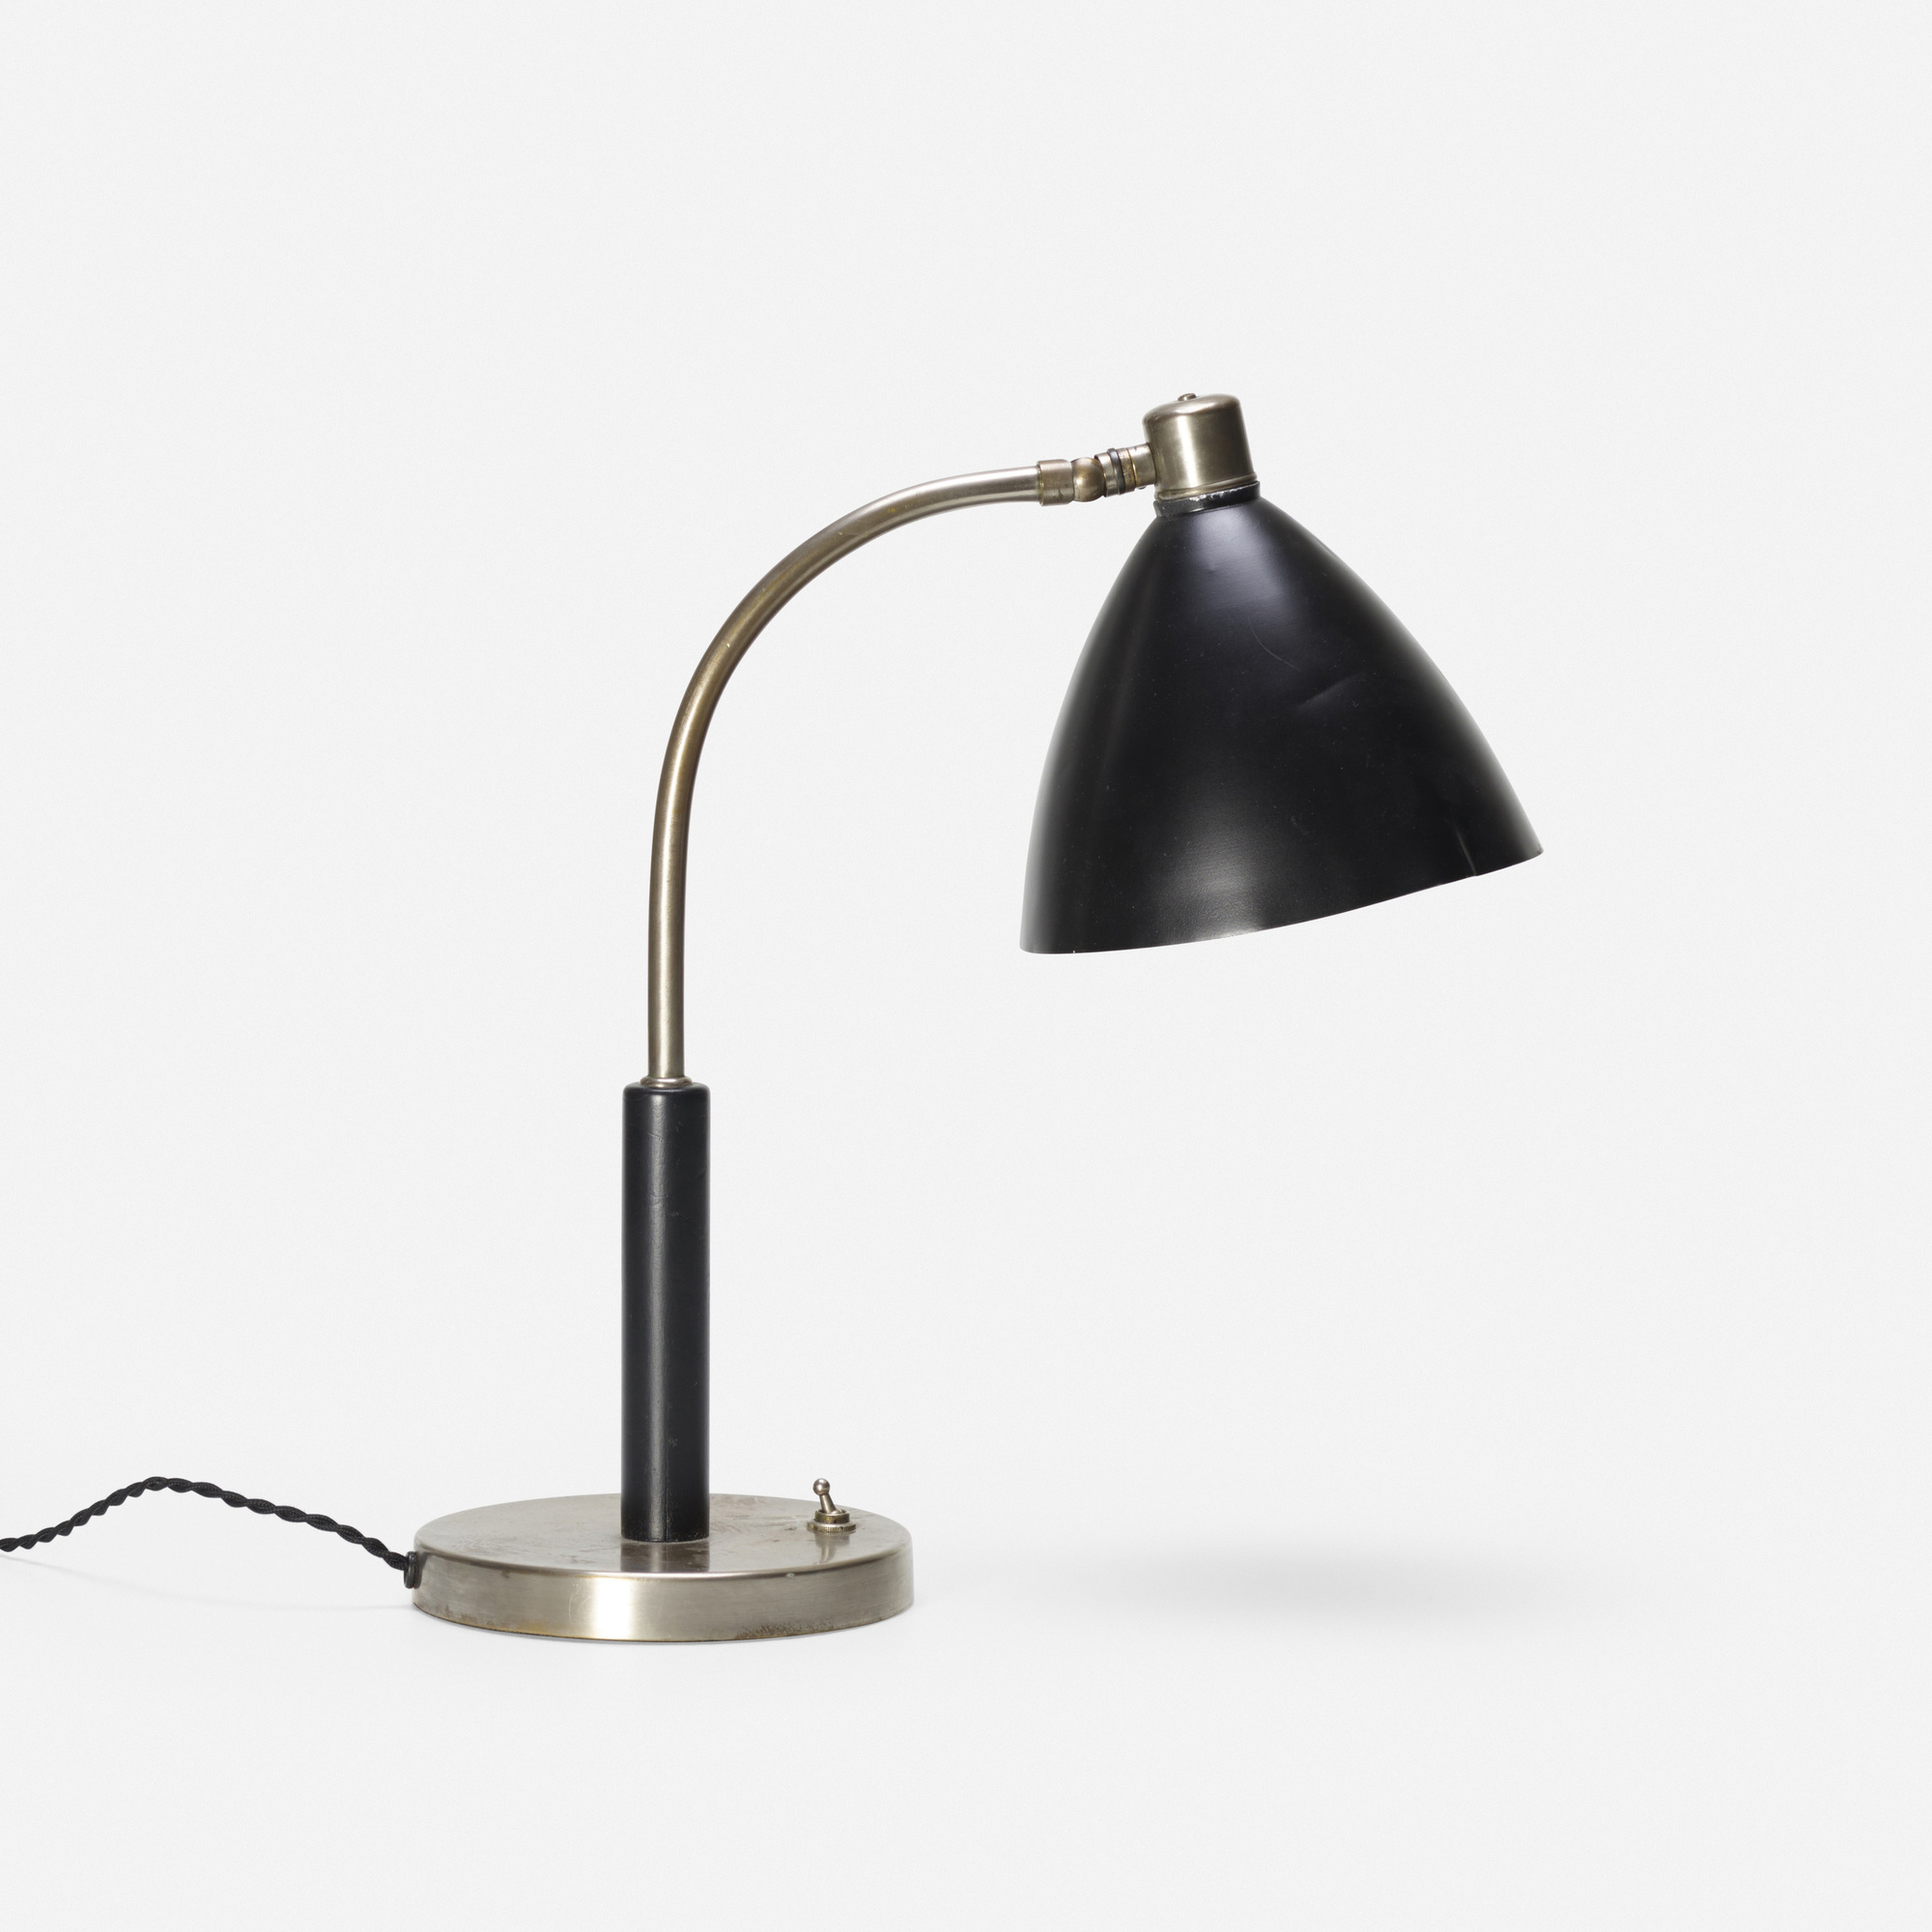 157: Bauhaus / table lamp (1 of 1)